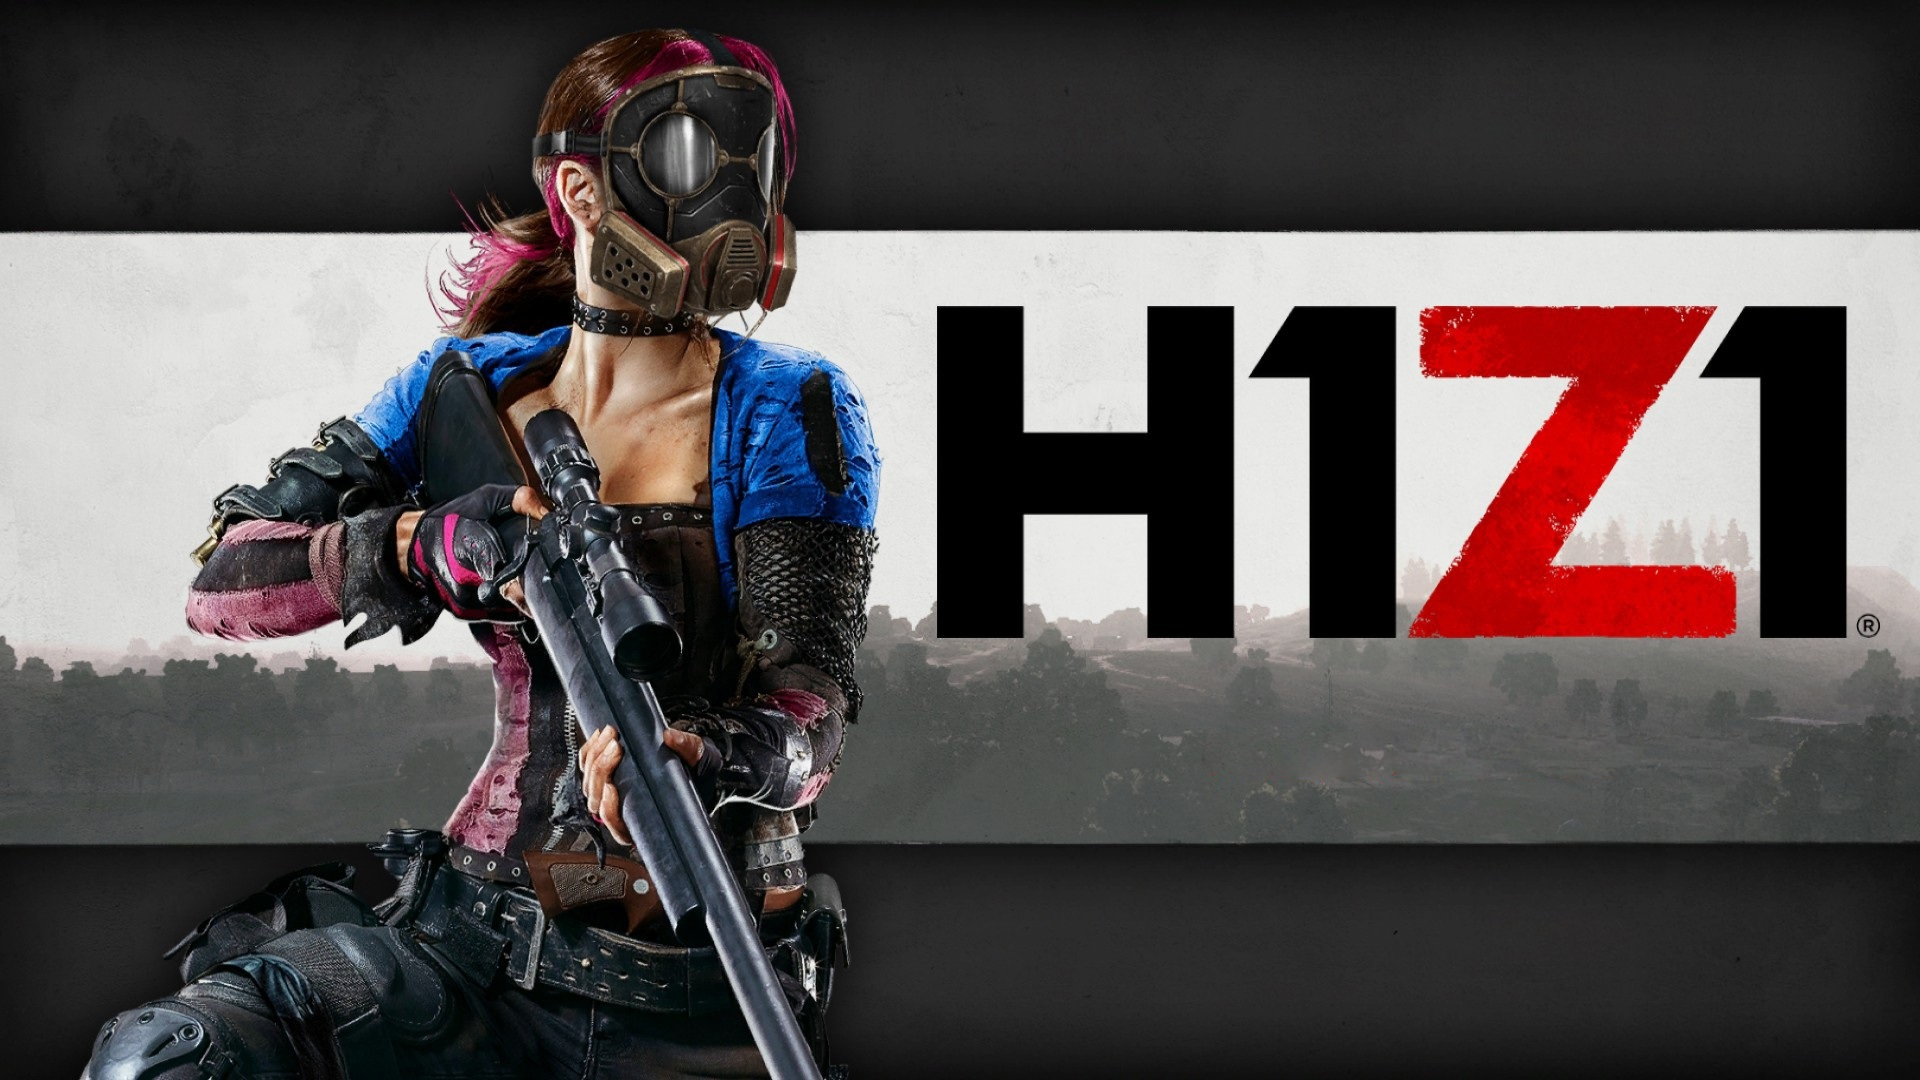 h1z1 desktop wallpaper 64155